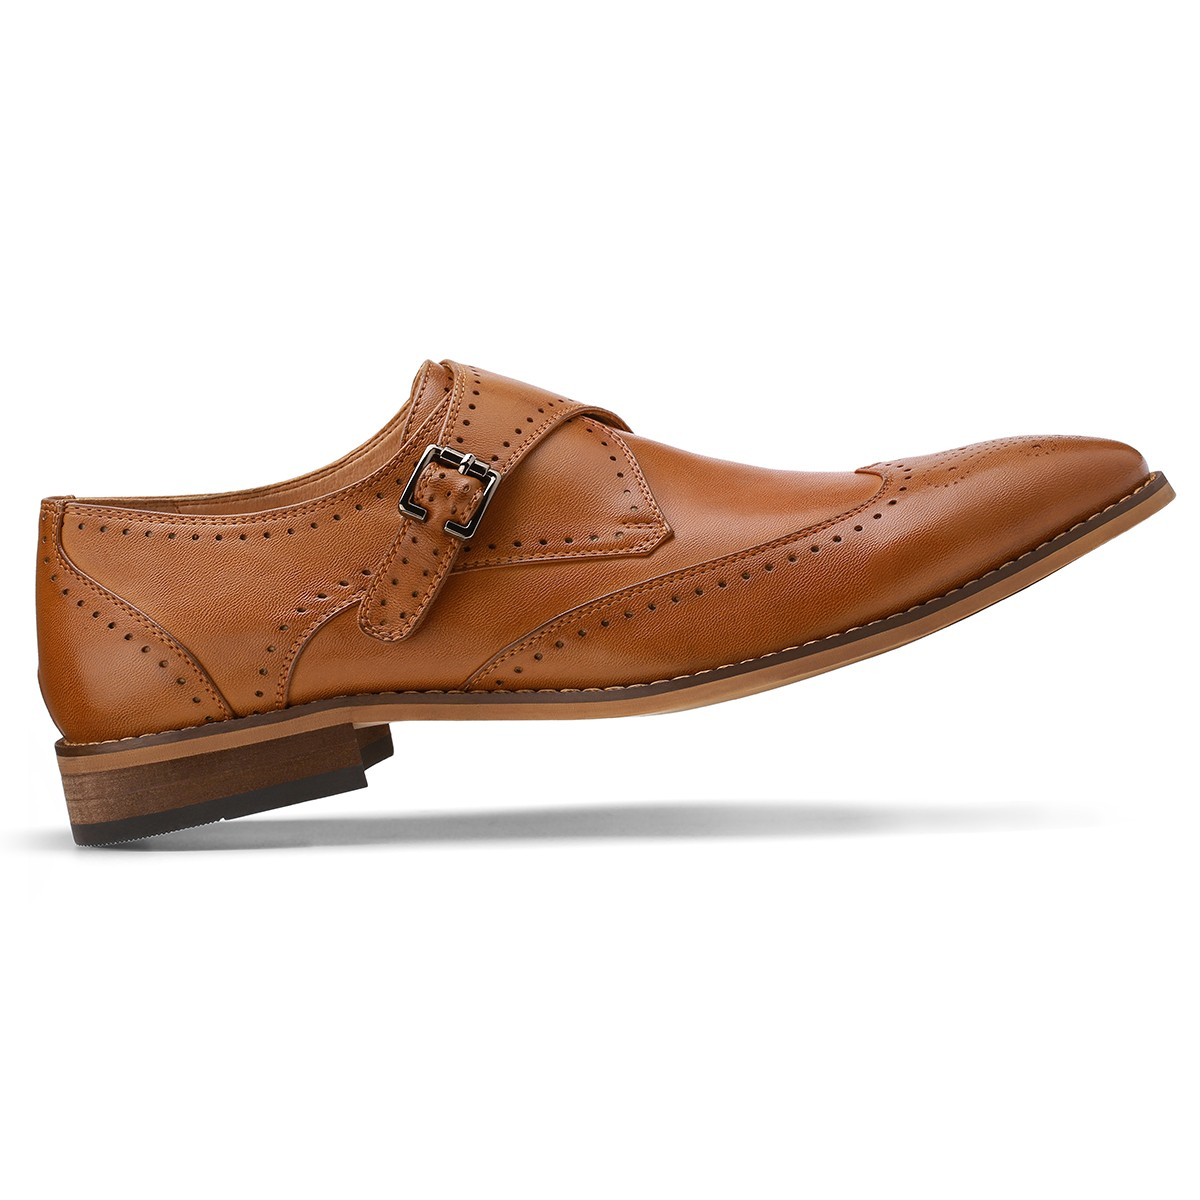 GM Golaiman G1413 Men Leather Shoes Business Shoes Comfortable Skin-friendly - Brown US 13